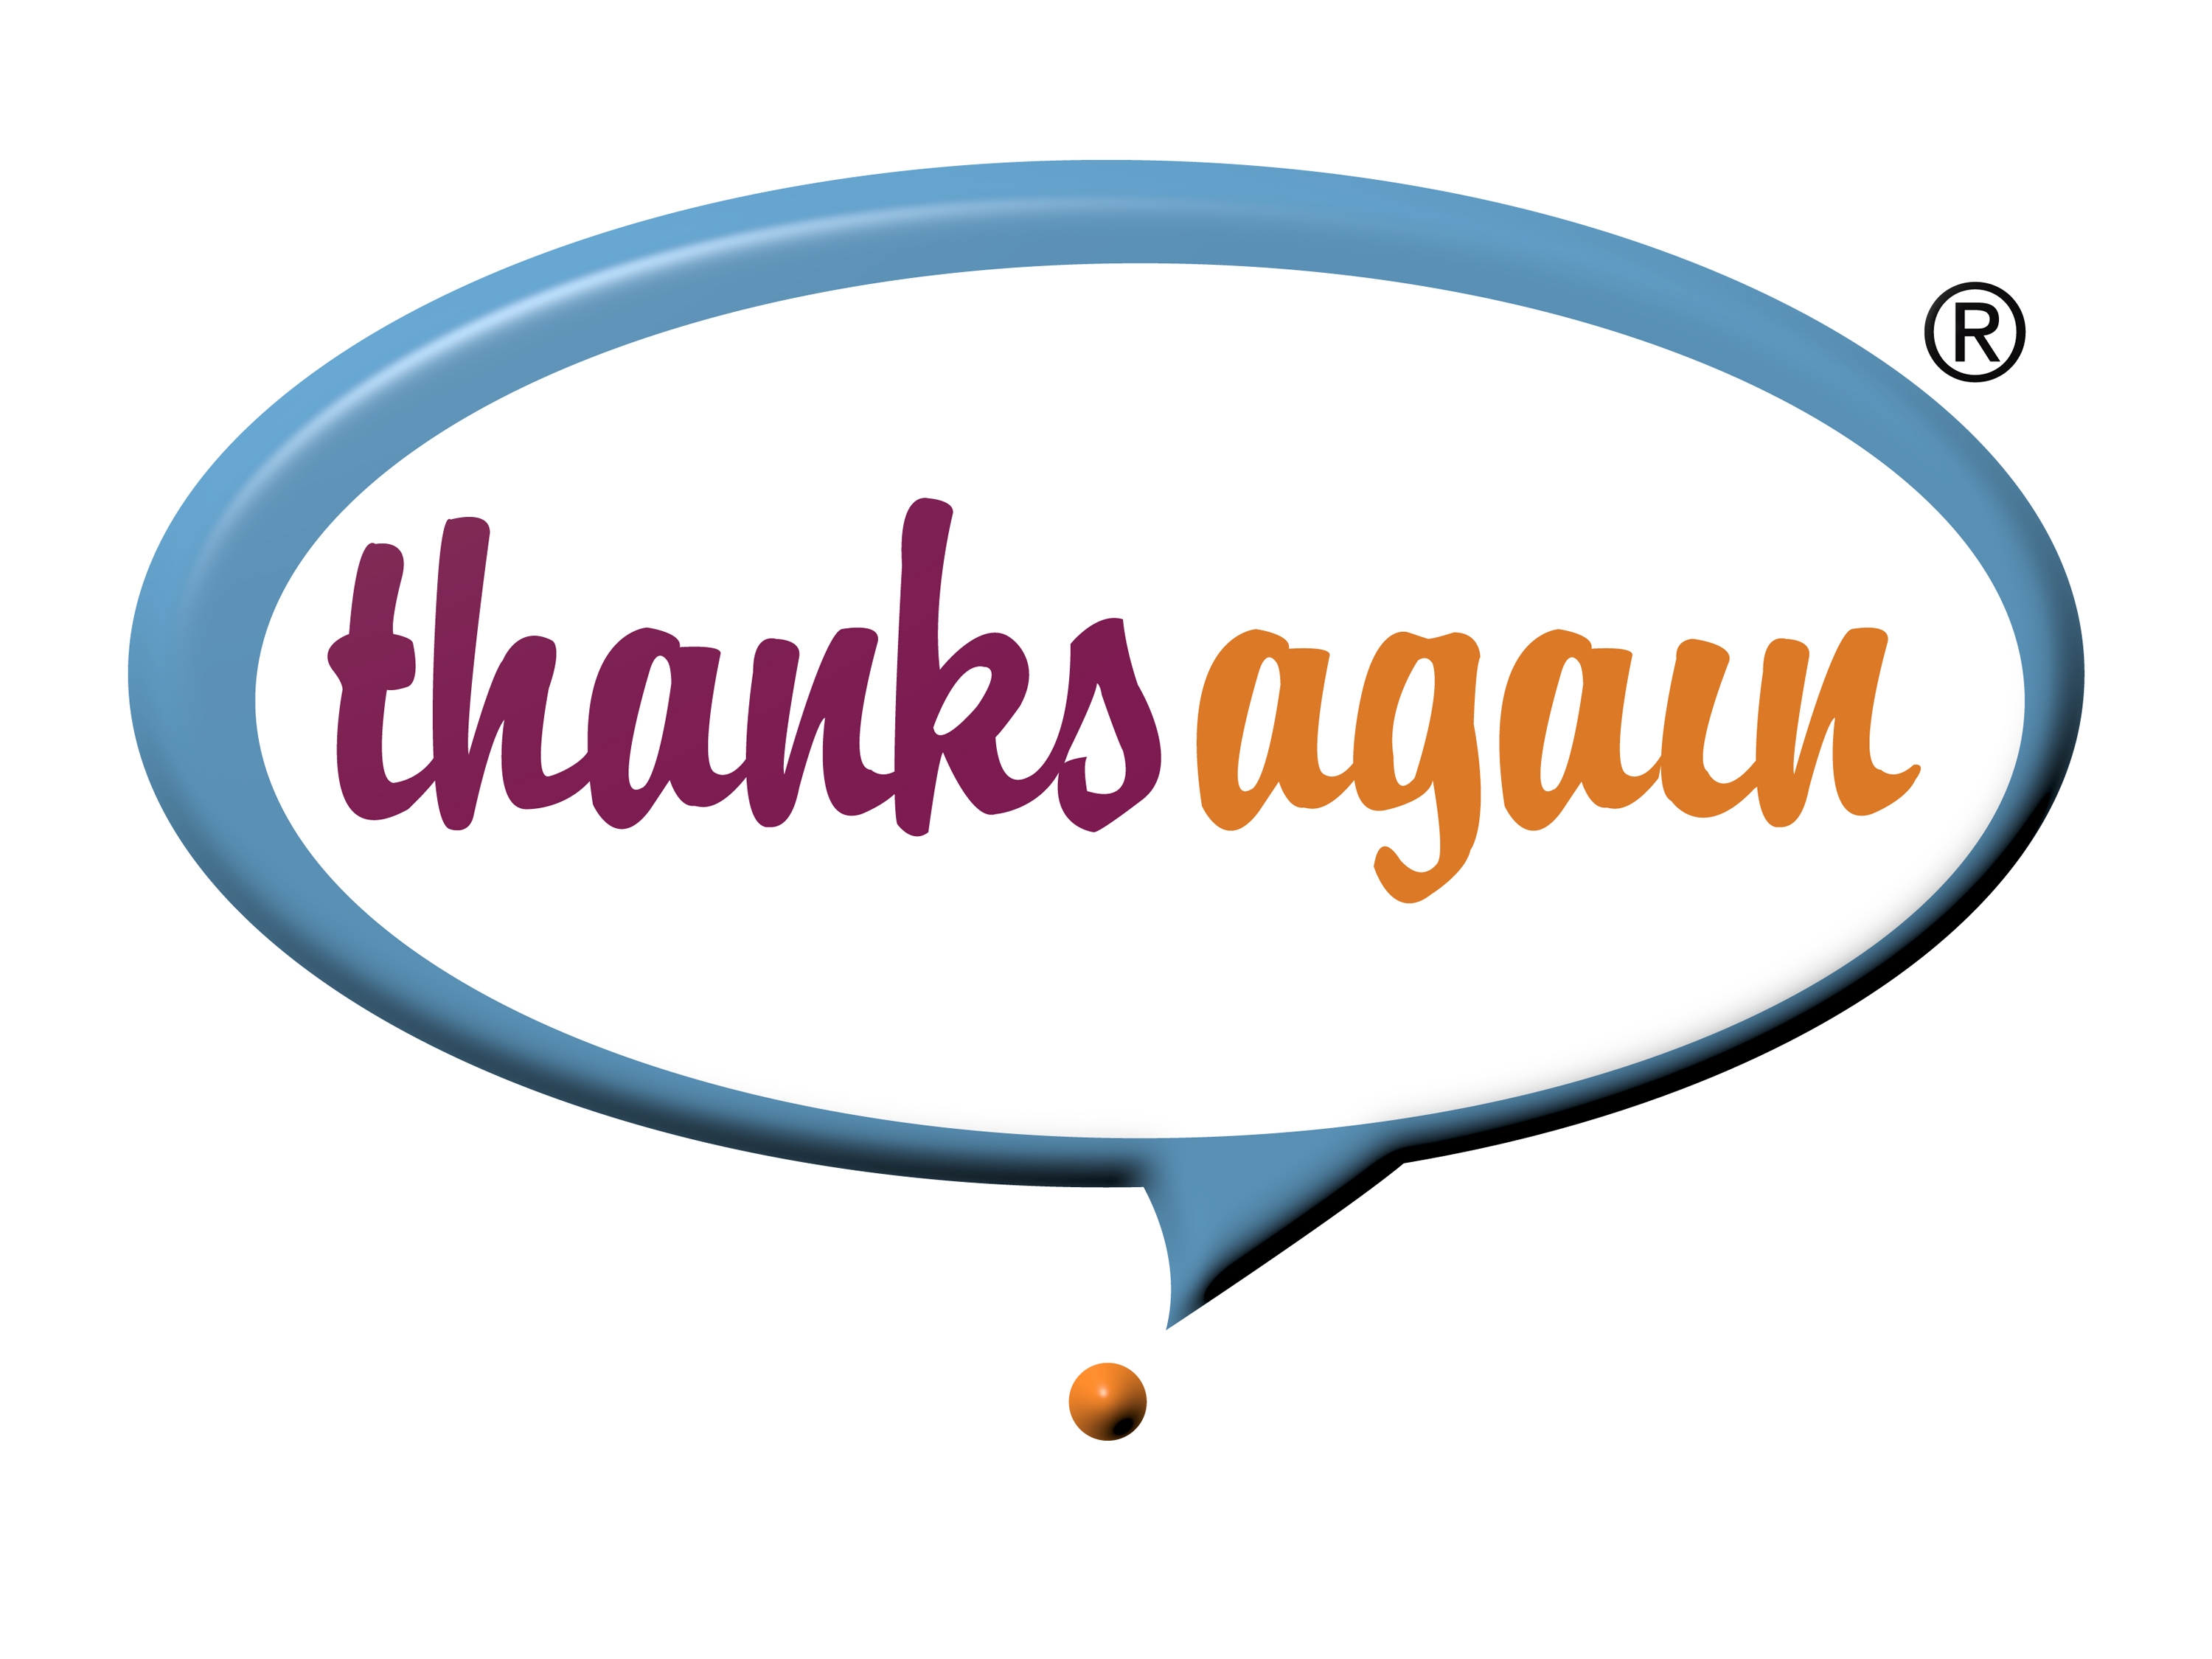 A Thanks Again Pictures, Images & Photos | Photobucket